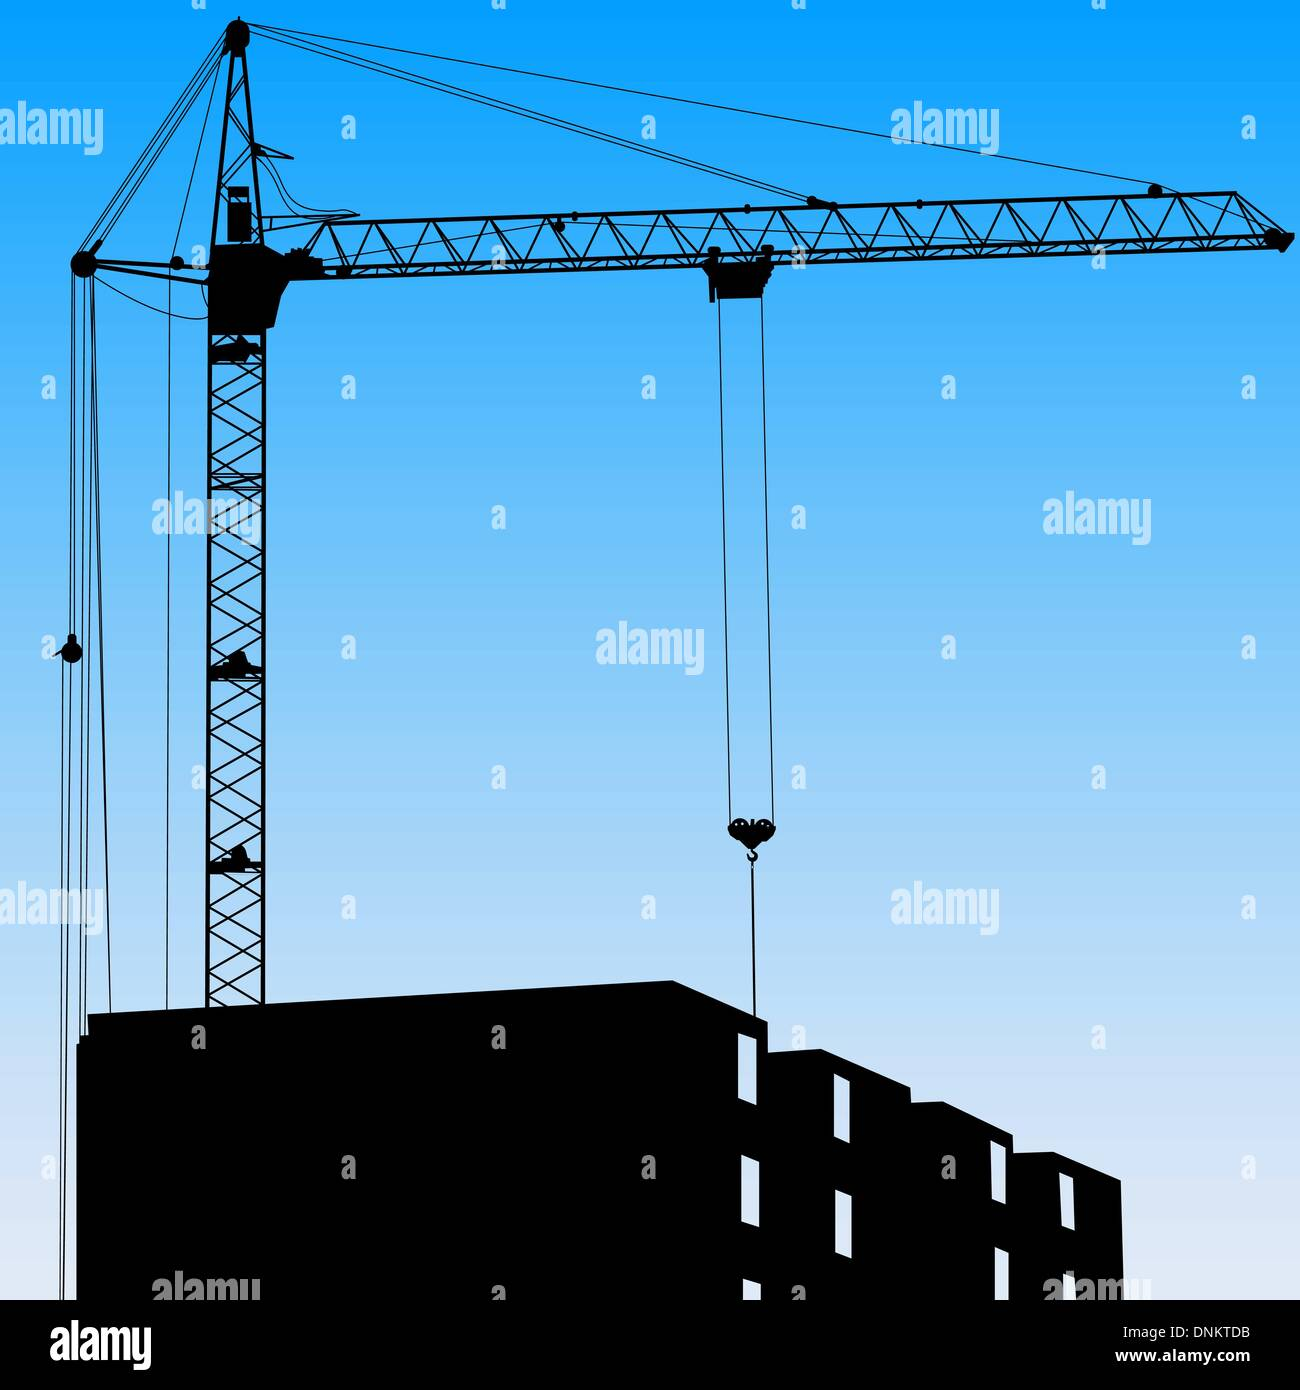 Silhouette of one cranes working on the building on a blue background Stock Vector